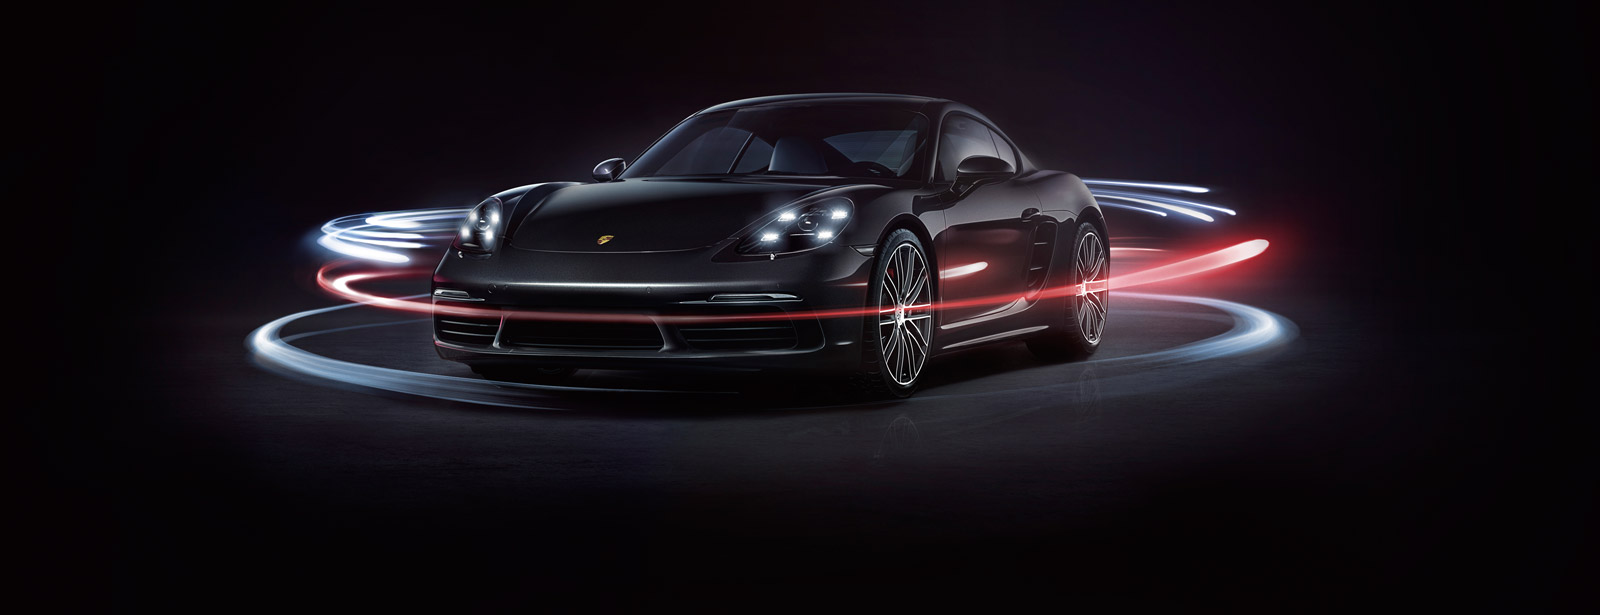 Radiant Power.  - The Porsche lighting systems.